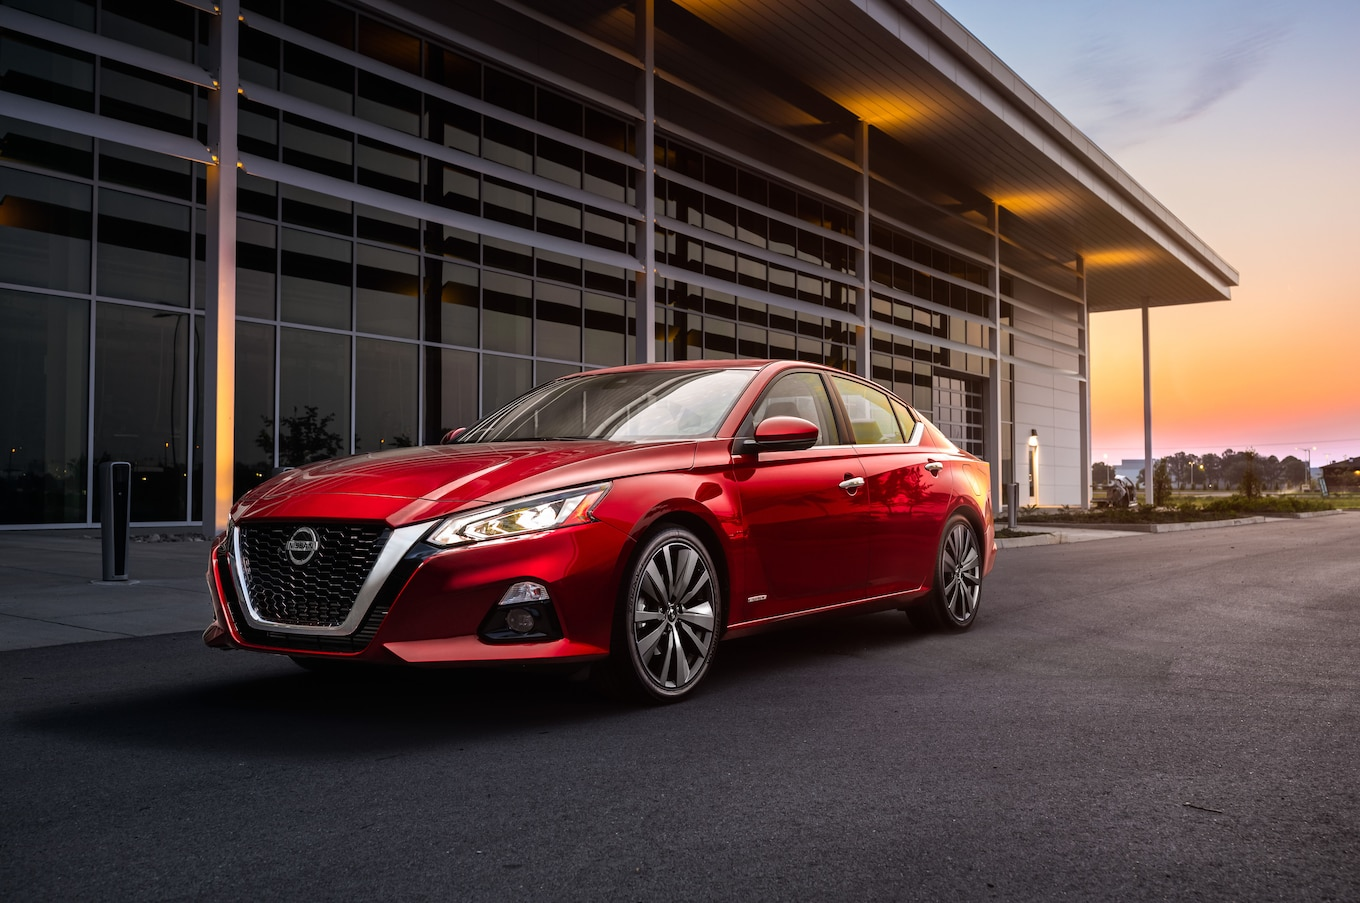 2019 Nissan Altima 7 Things To Know Motor Trend